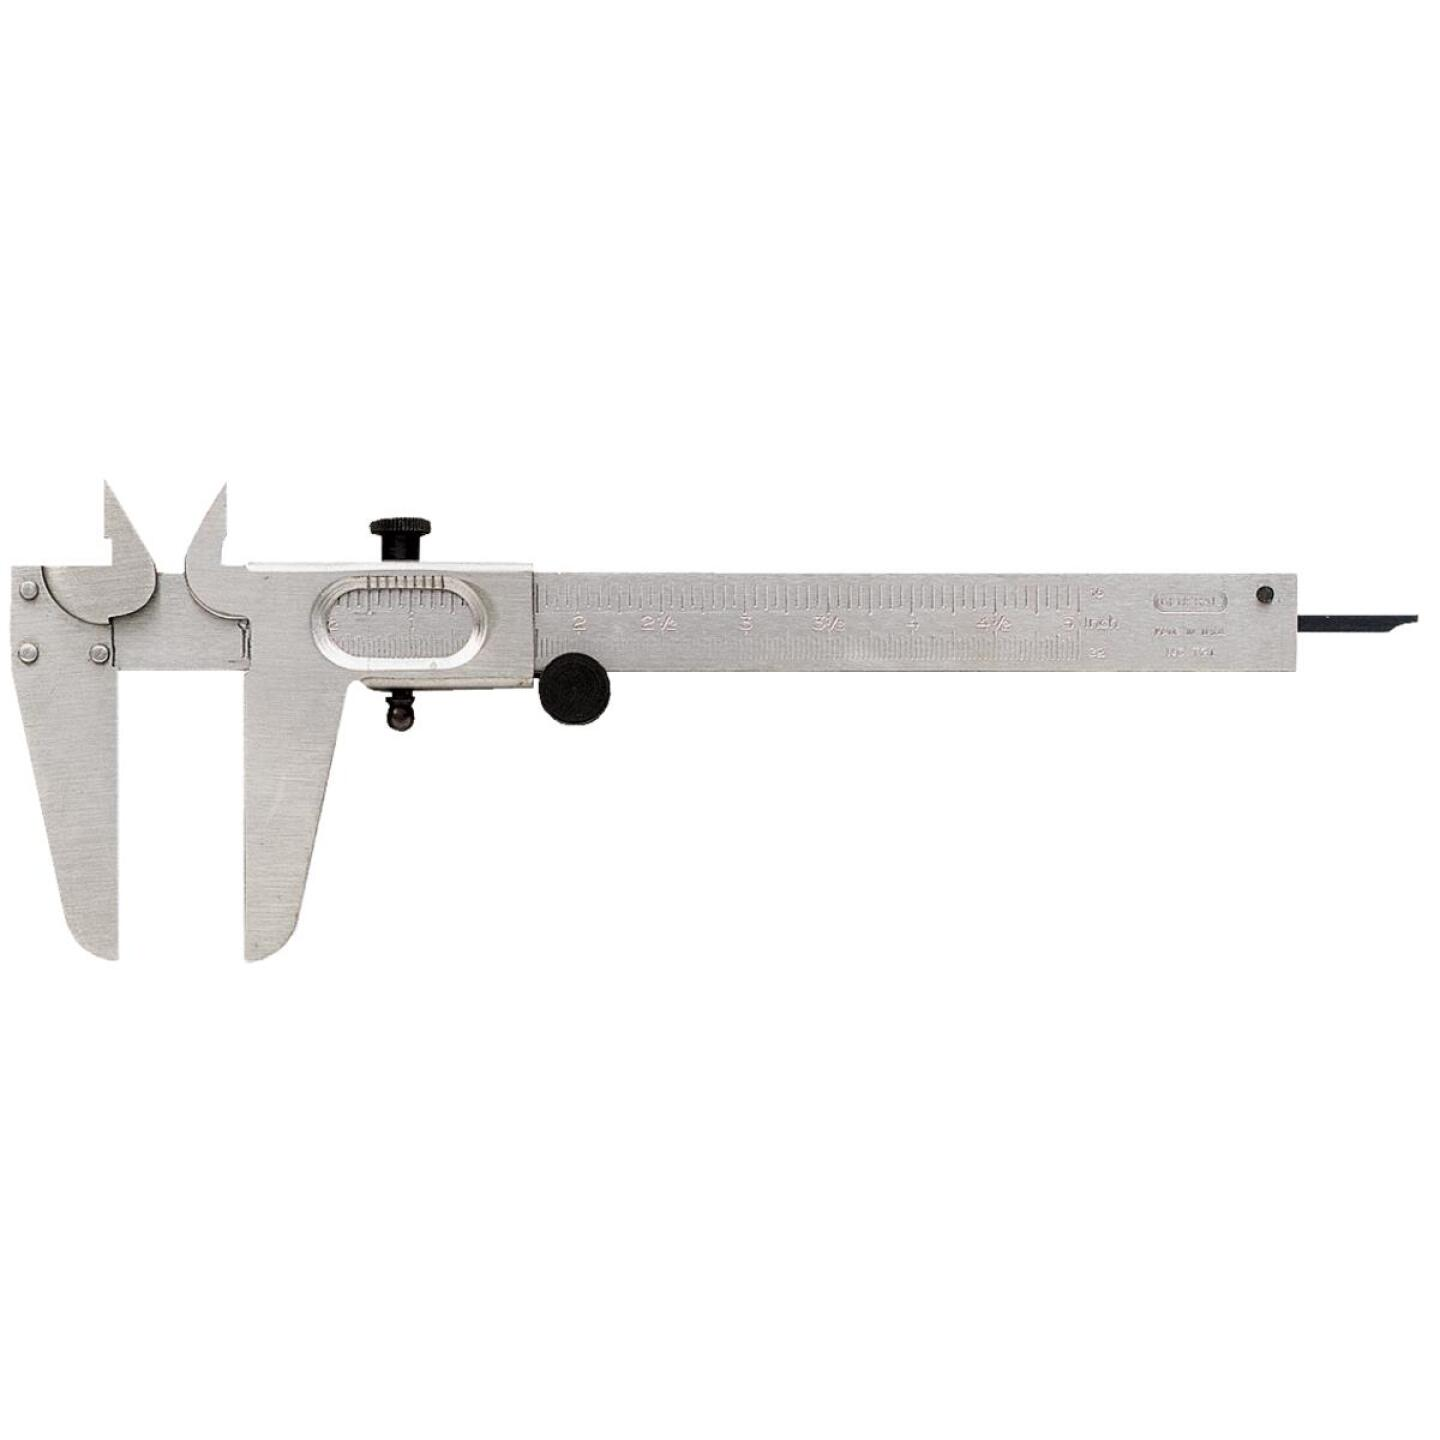 General Tools 5 In. Fractional Vernier Caliper Image 1